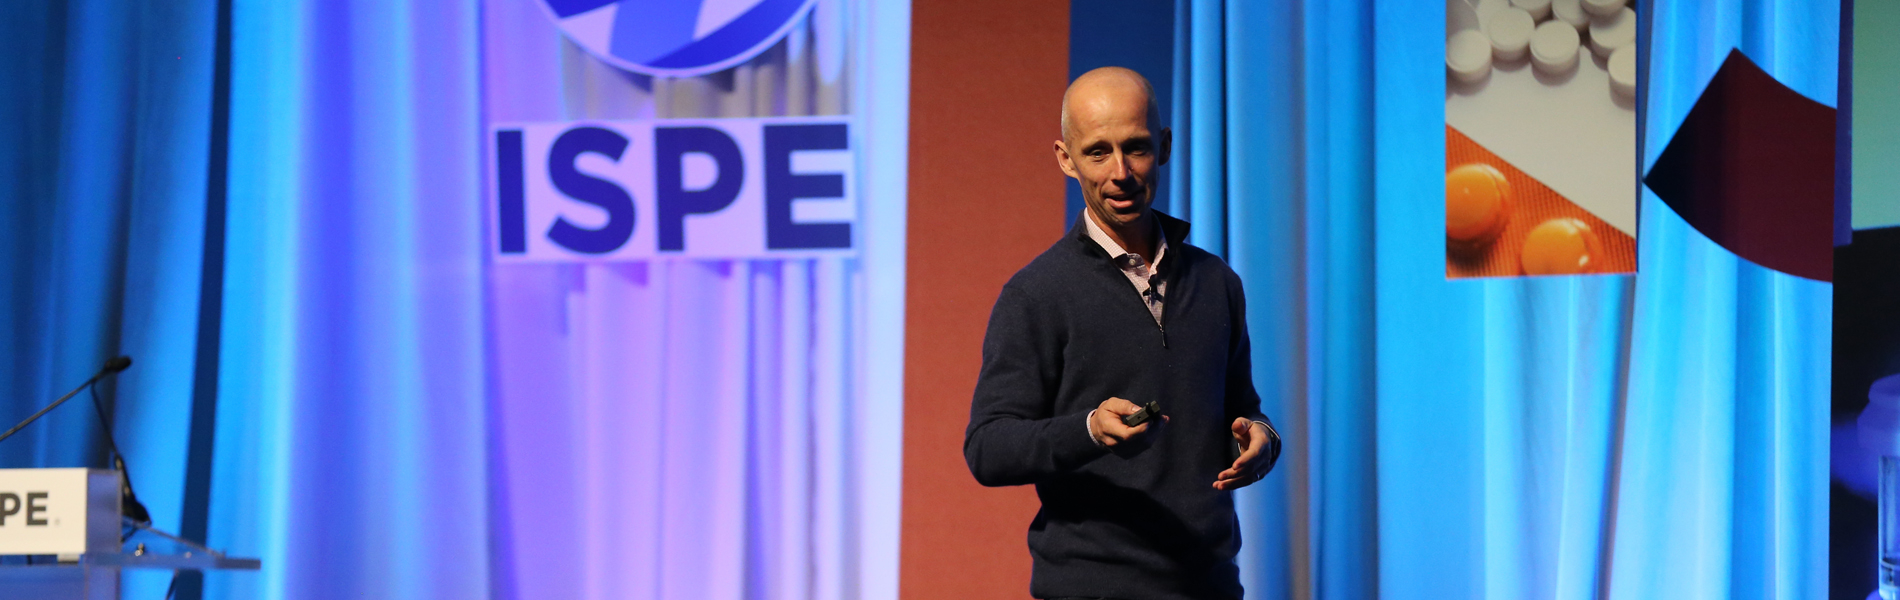 2018 ISPE Annual Meeting & Expo Keynote Speaker Nick Leschly, bluebird bio - ISPE Pharmaceutical Engineering